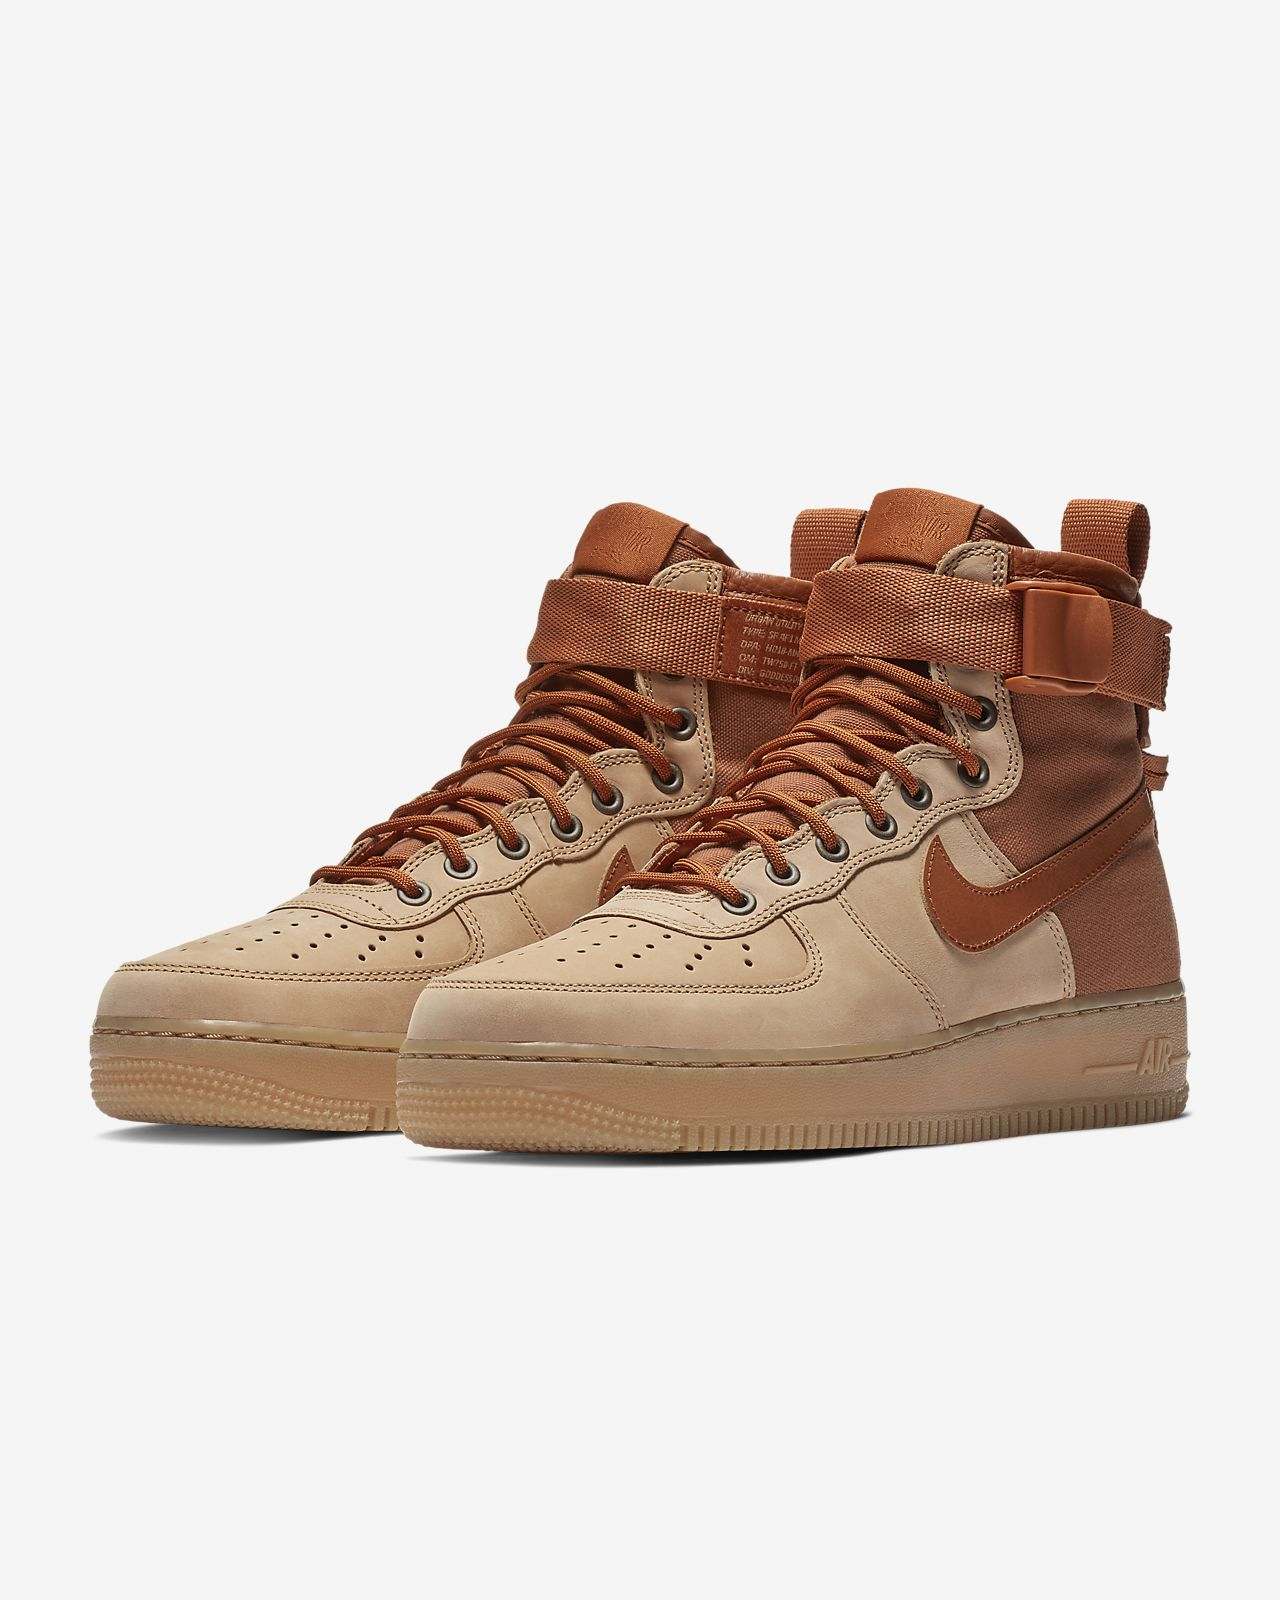 8004d024478b Nike SF Air Force 1 Mid Premium Men s Shoe. Nike.com ZA